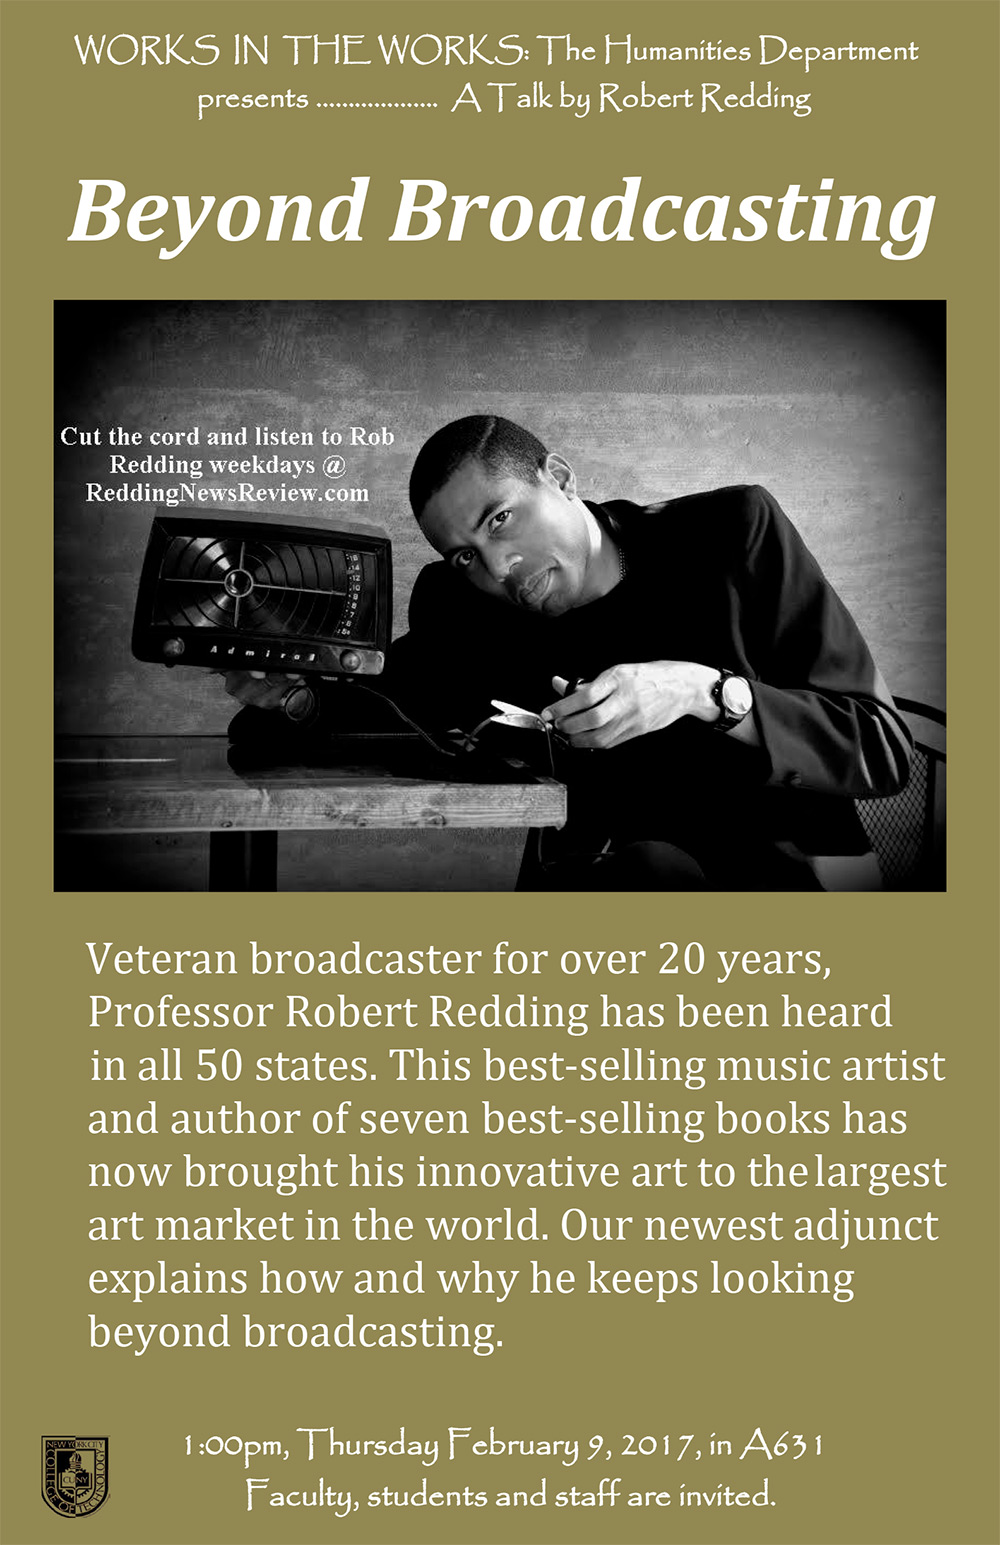 Works in the Works: Beyond Broadcasting presented by Professor Robert Redding 1